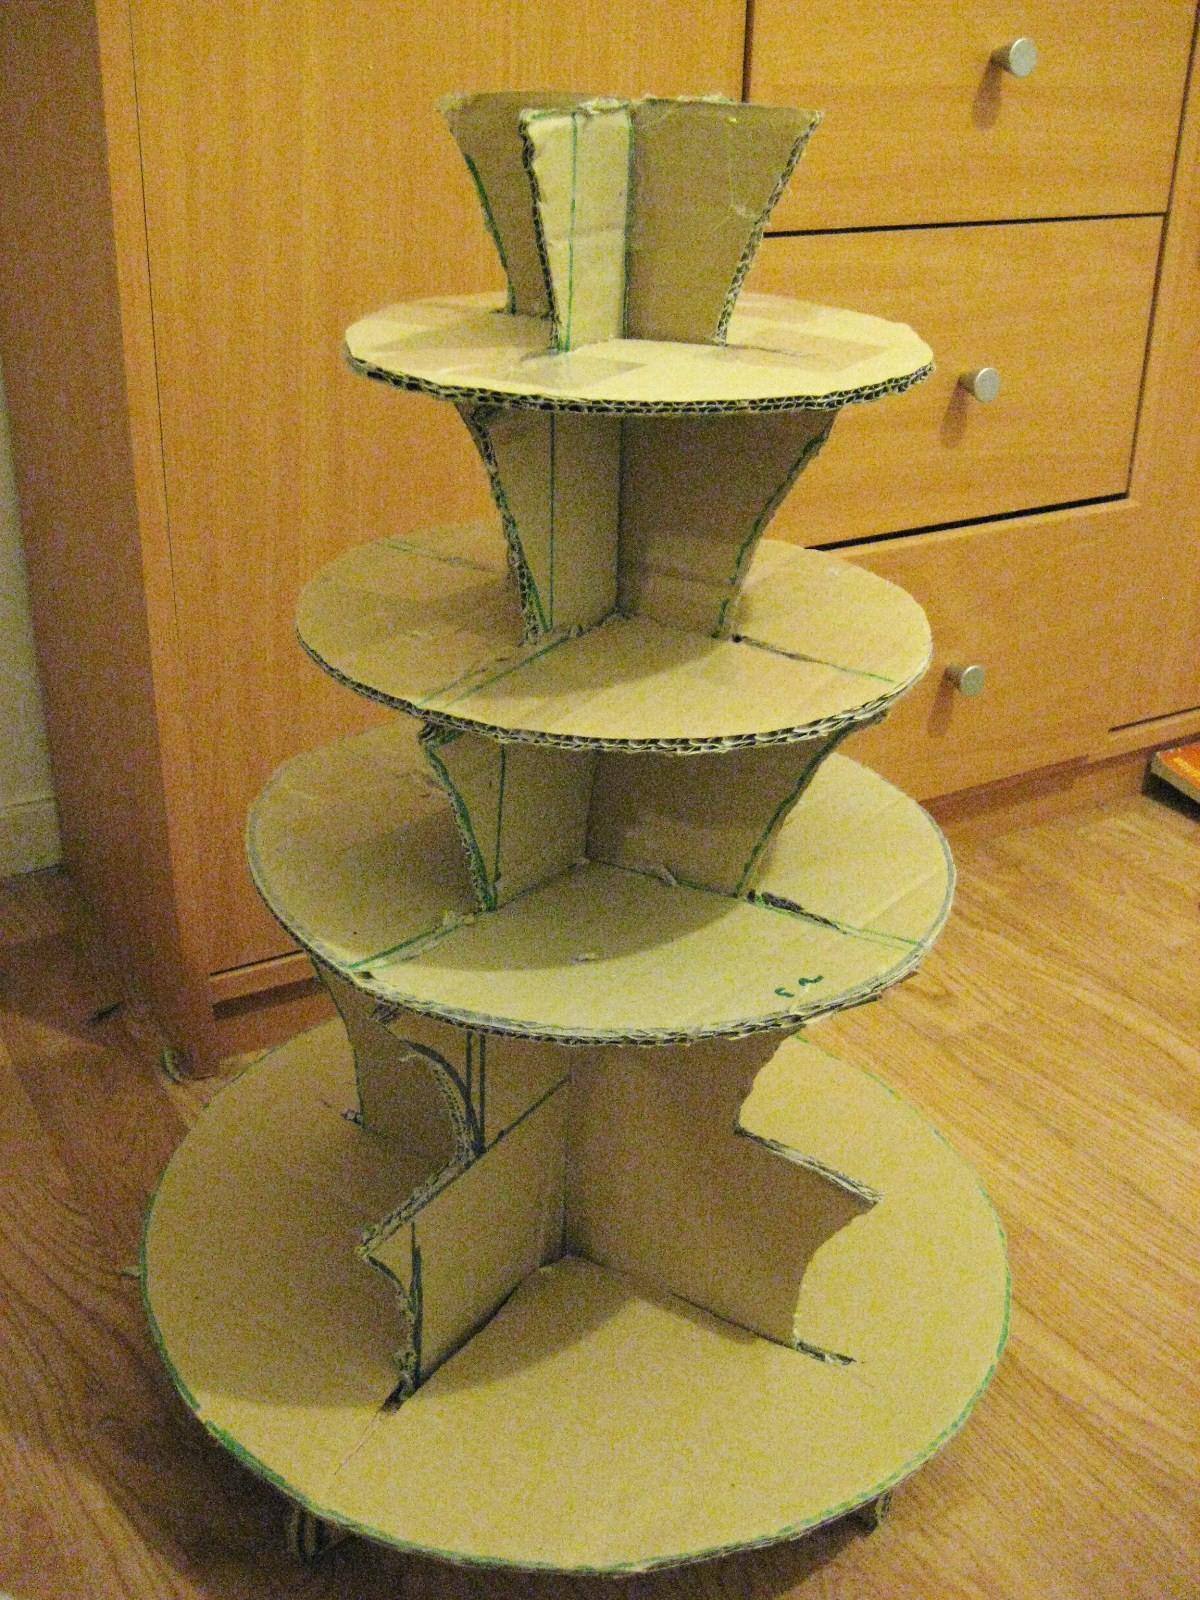 Homemade Cupcake Stand Wilton 415 0724 Pack Corrugated